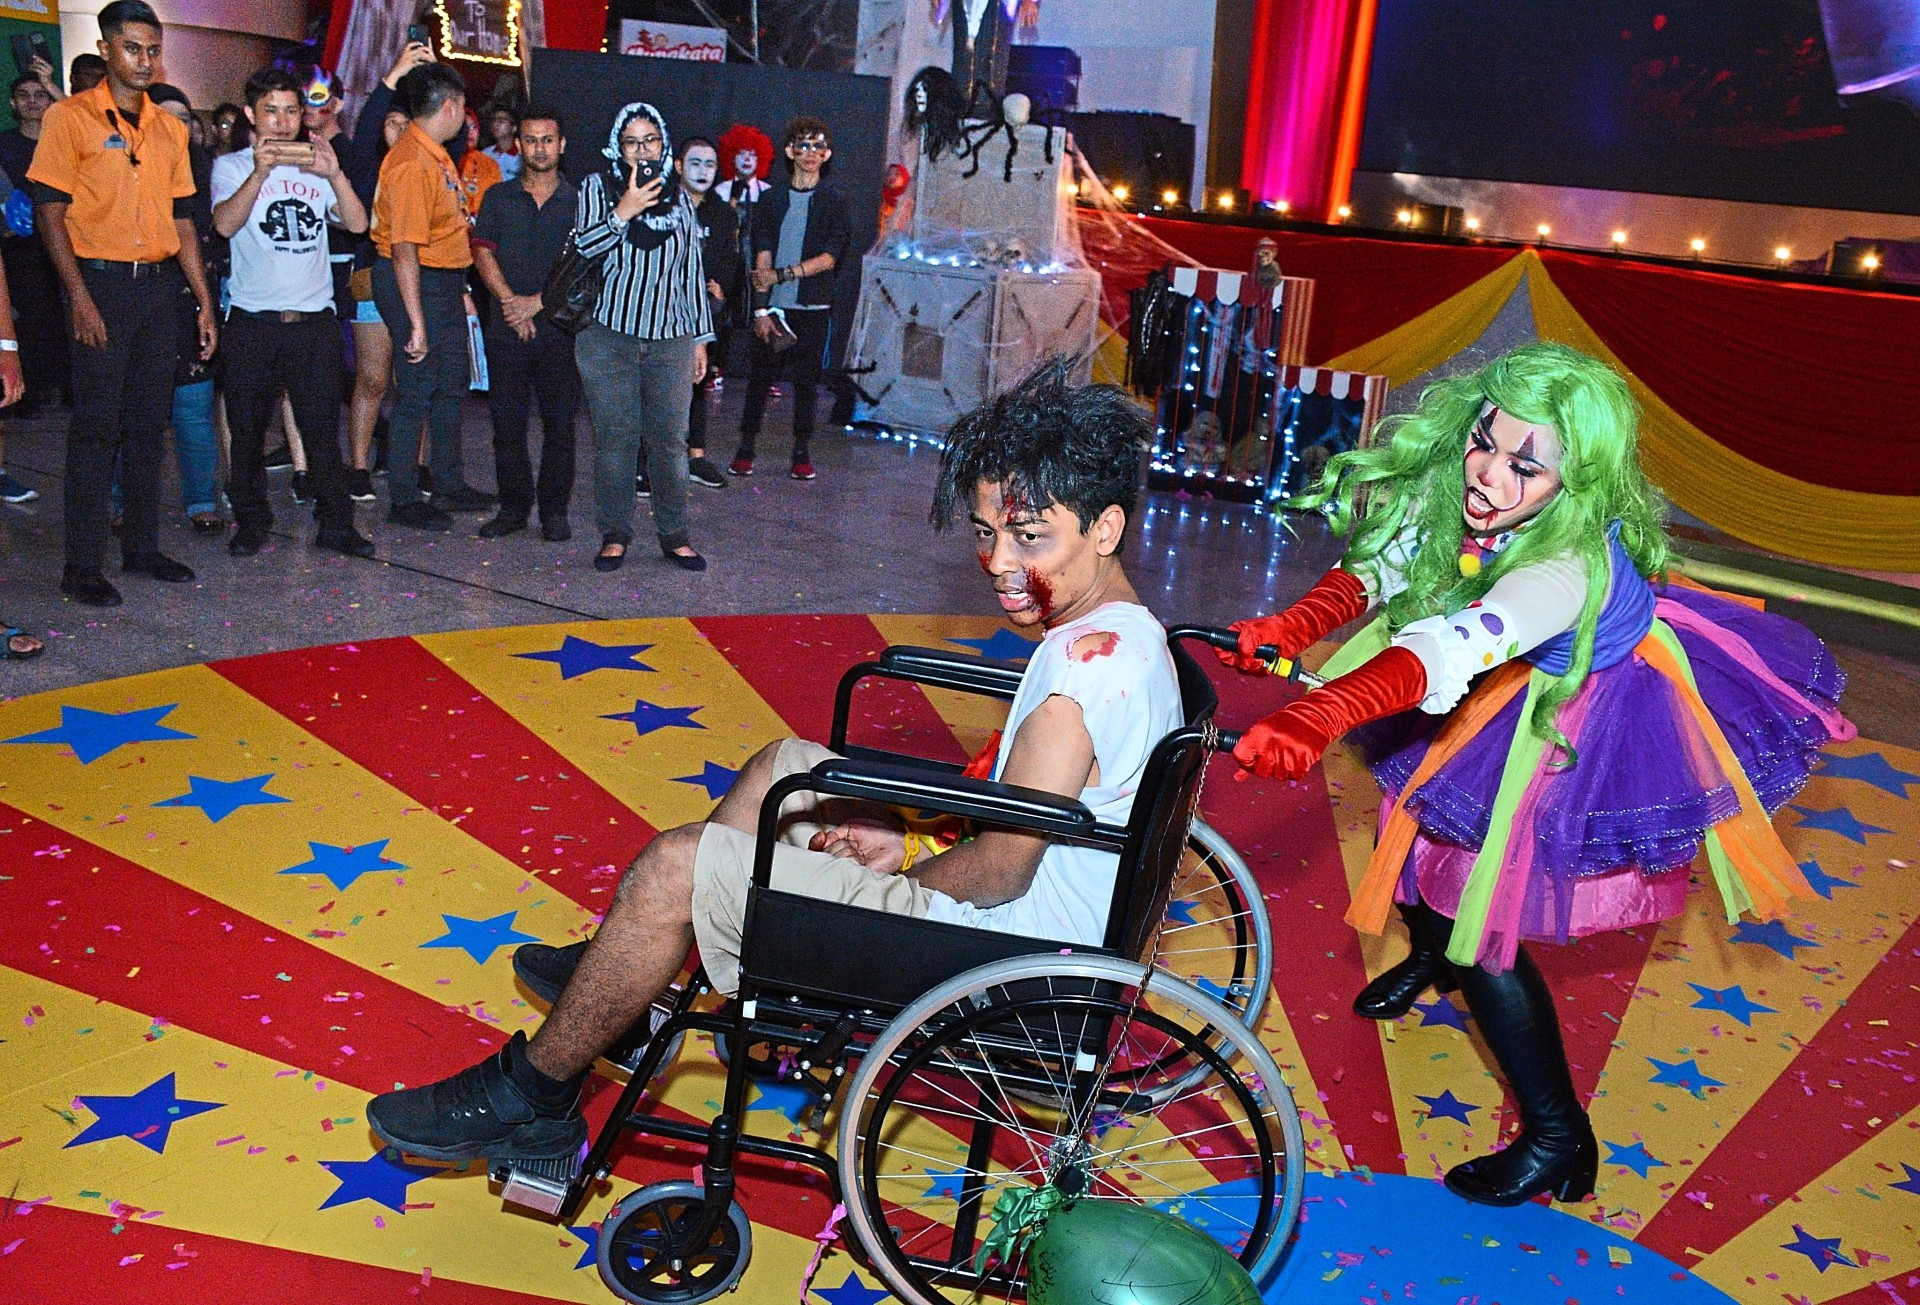 A scary clown terrorising a victim during the performance themed 'A Nightmare on Killer Clown Street'.